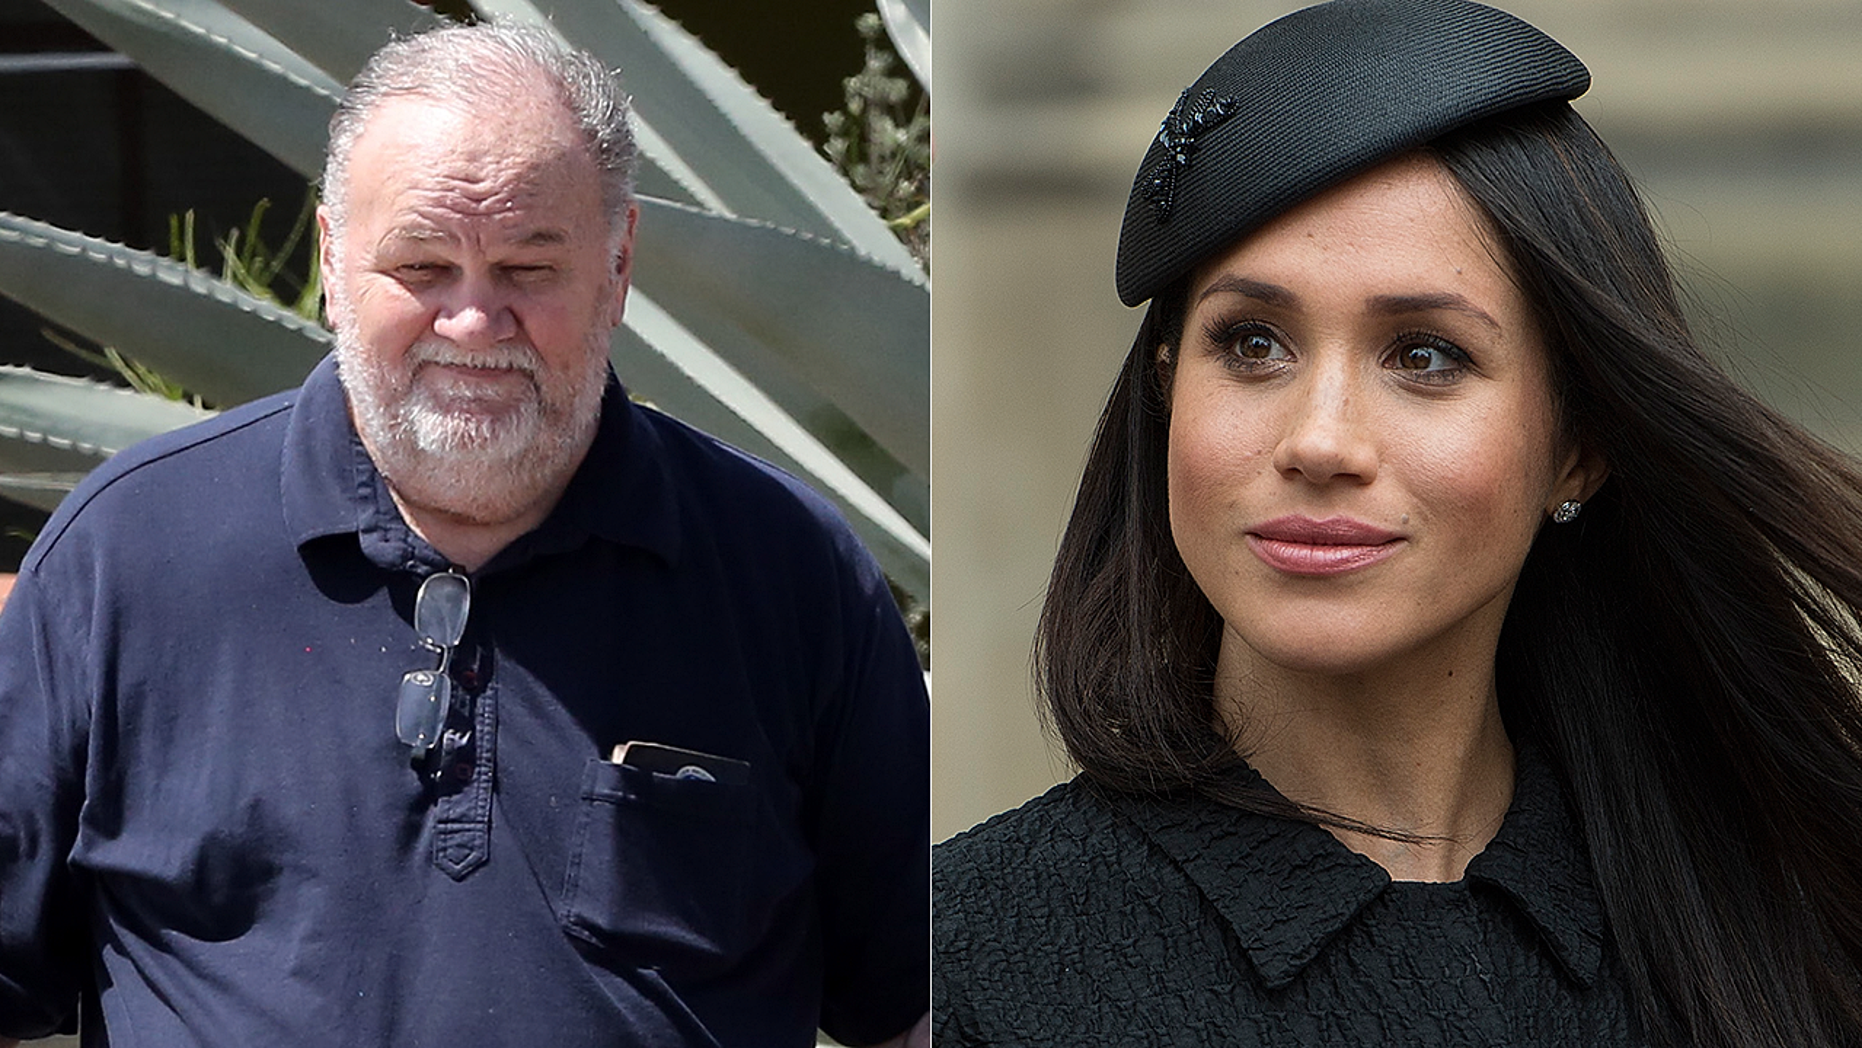 One royal biographer revealed in an upcoming TLC documentary that former Hollywood lighting director Thomas Markle (left) will likely never meet his daughter Meghan Markle's royal baby.